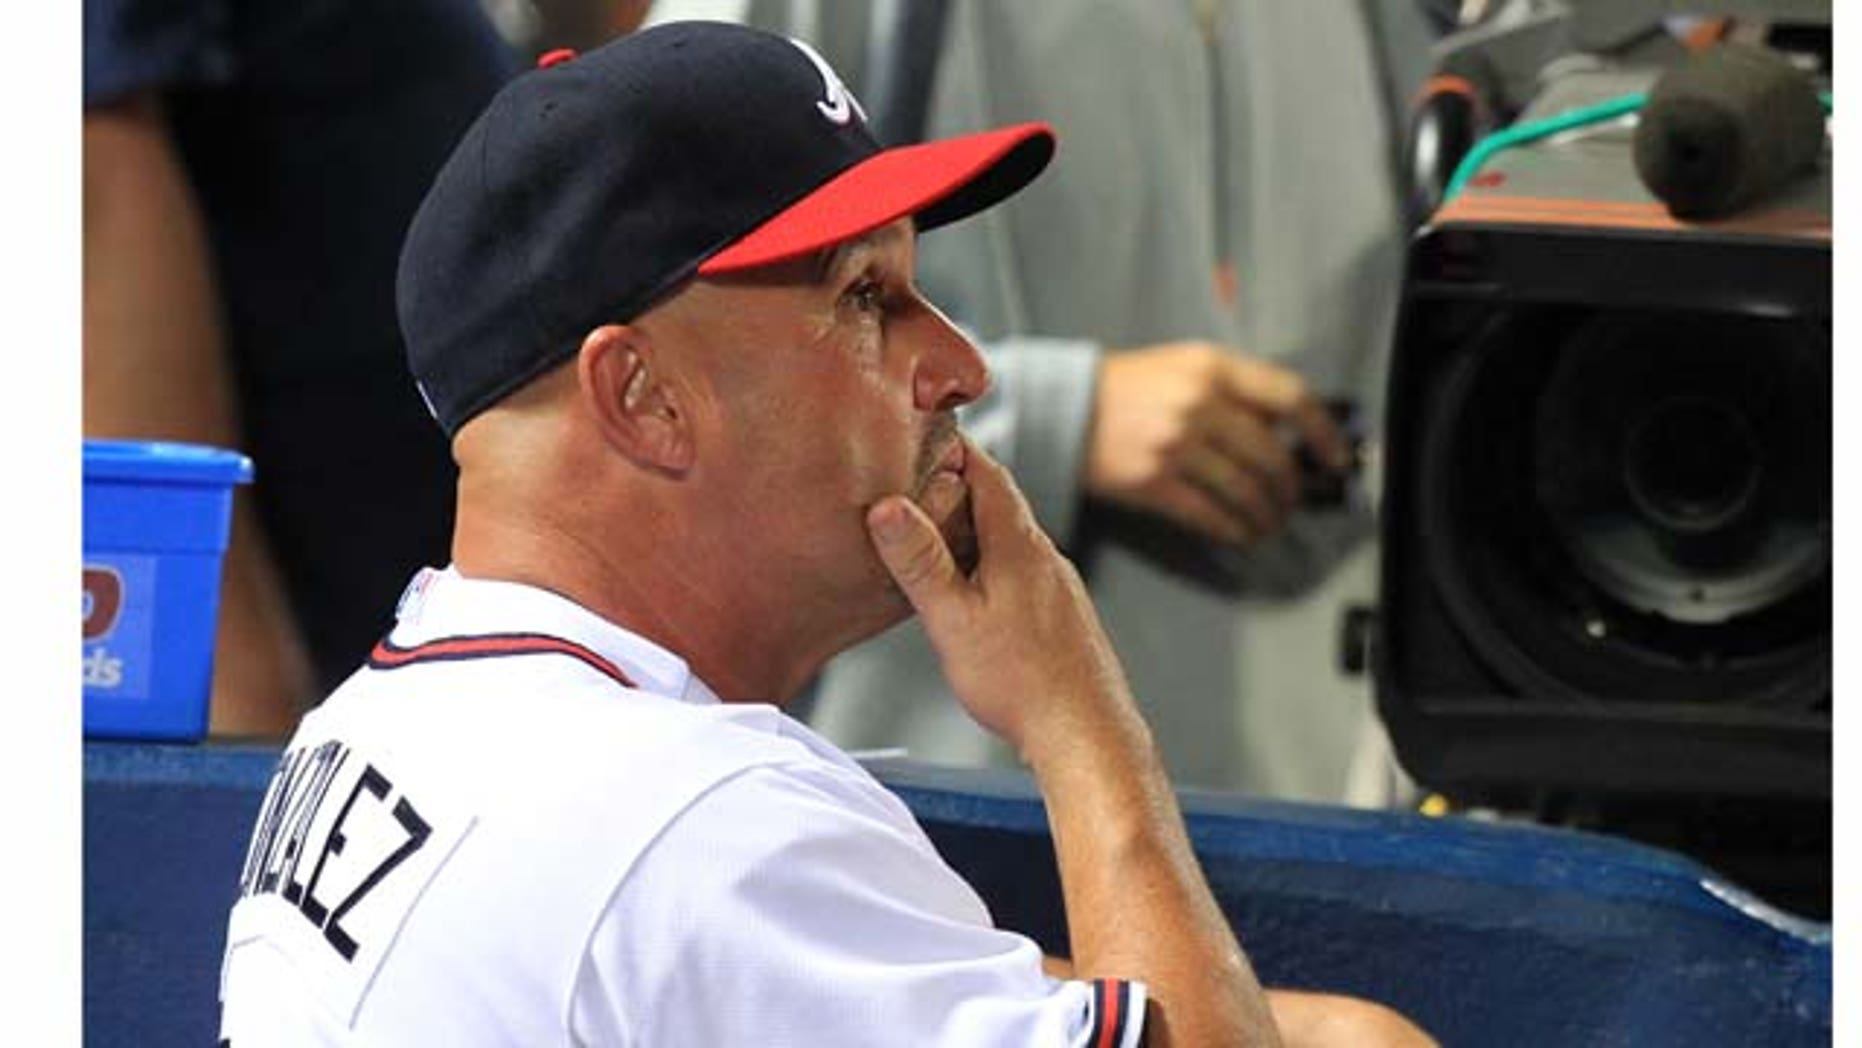 Atlanta Braves manager Fredi Gonzalez watches in the late innings of the team's 4-3 loss to the Philadelphia Phillies in a baseball game at Turner Field in Atlanta on Wednesday, Sept. 28, 2011. (AP Photo/Atlanta Journal-Constitution, Curtis Compton) GWINNETT OUT  MARIETTA OUT